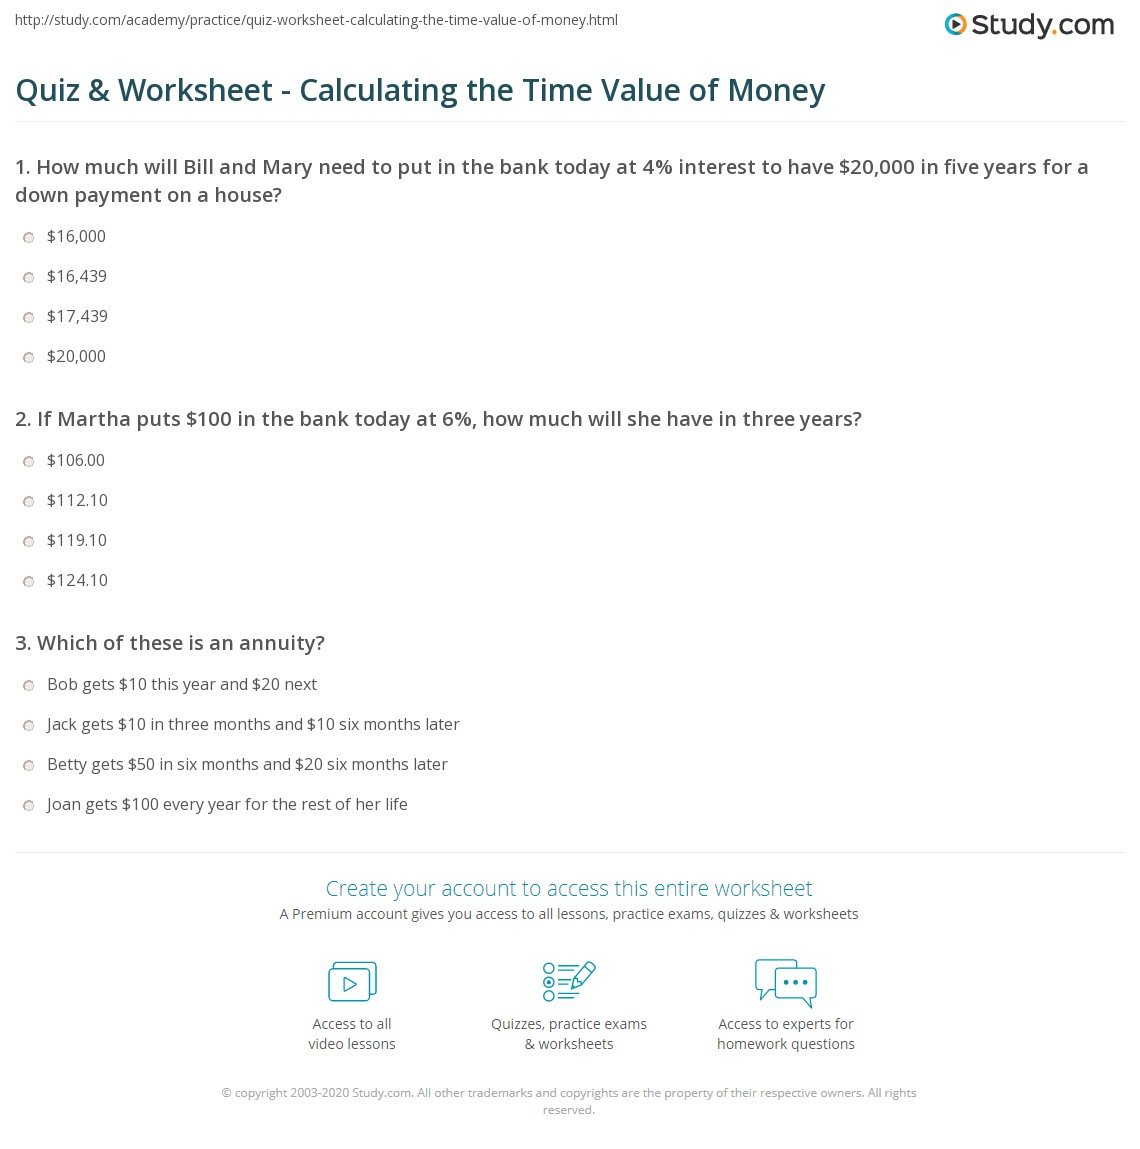 Quiz & Worksheet - Calculating the Time Value of Money | Study.com